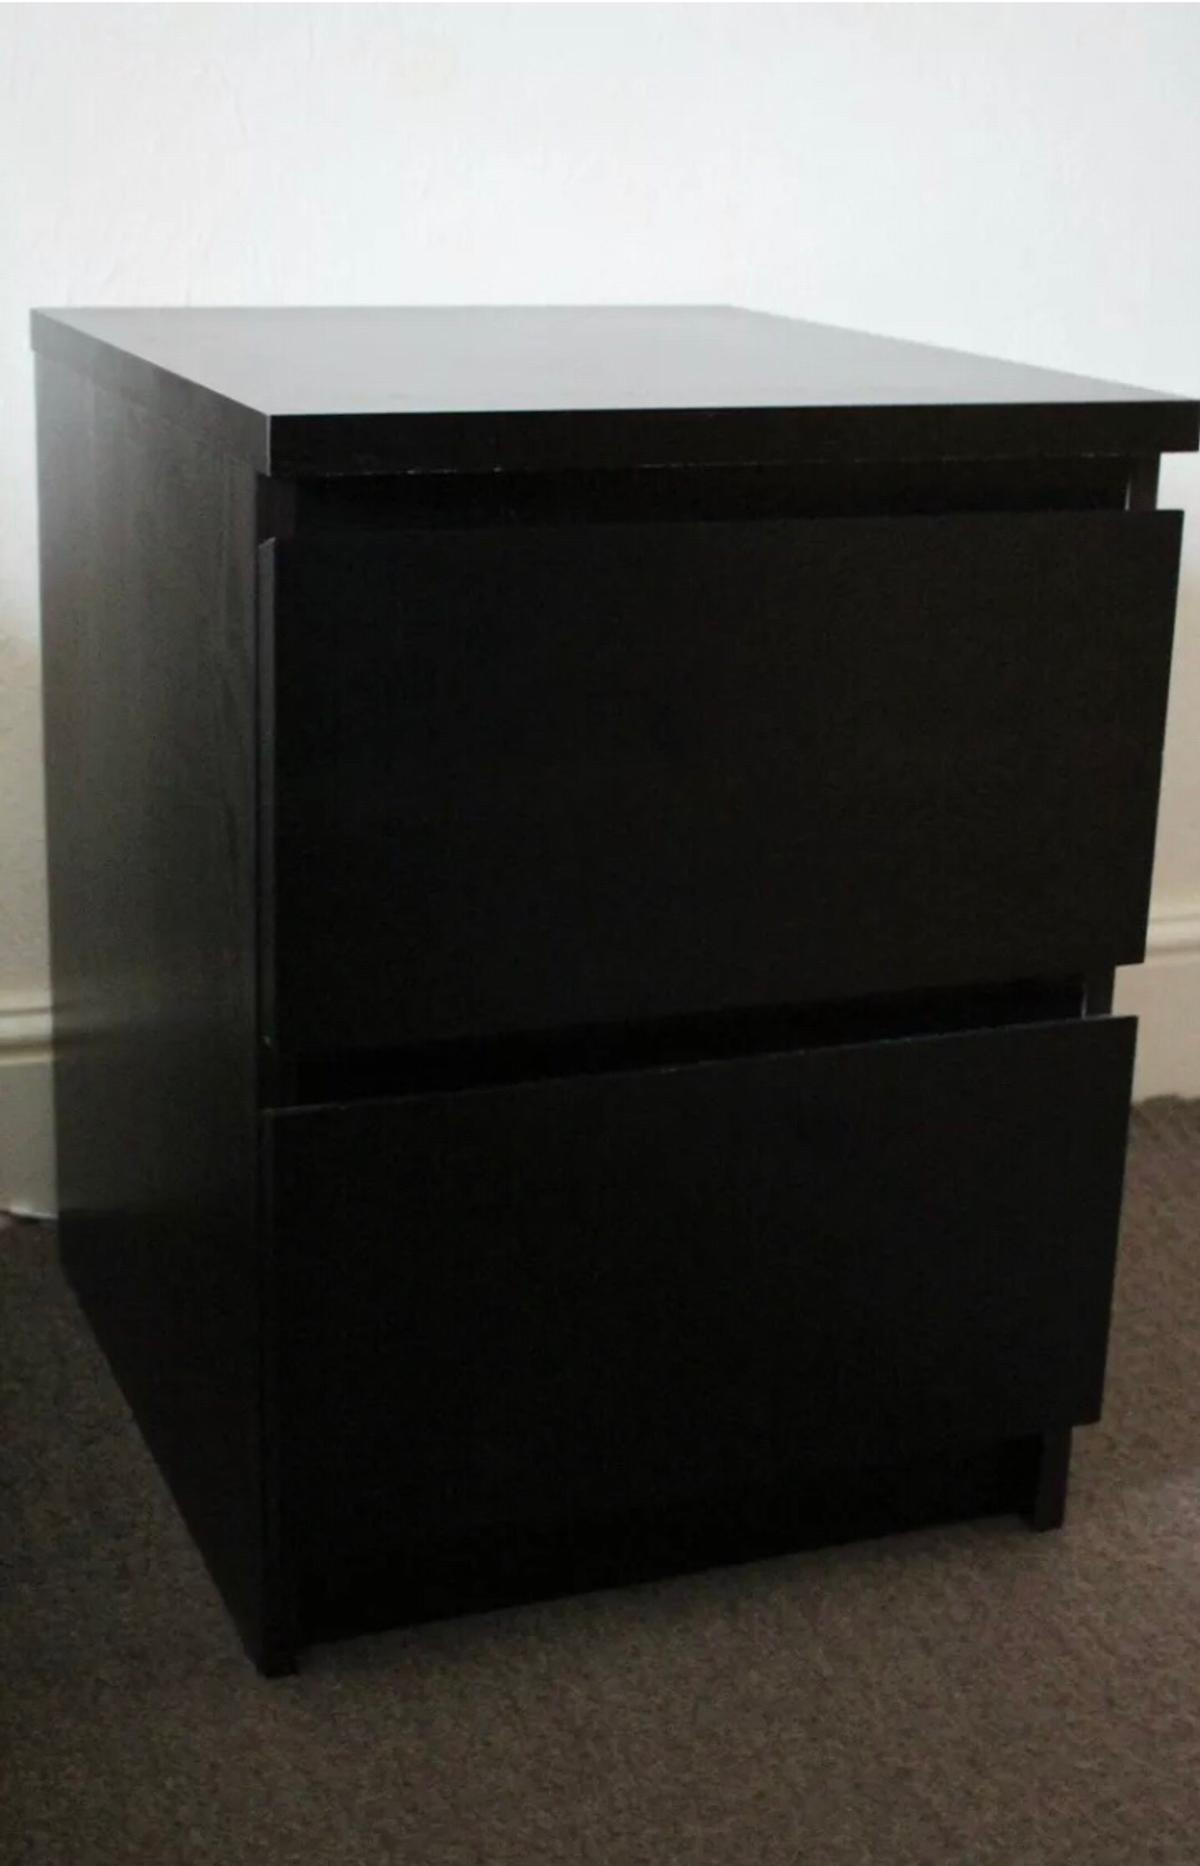 Ikea Bedside Table Chest Of 2 Drawers Black In Me16